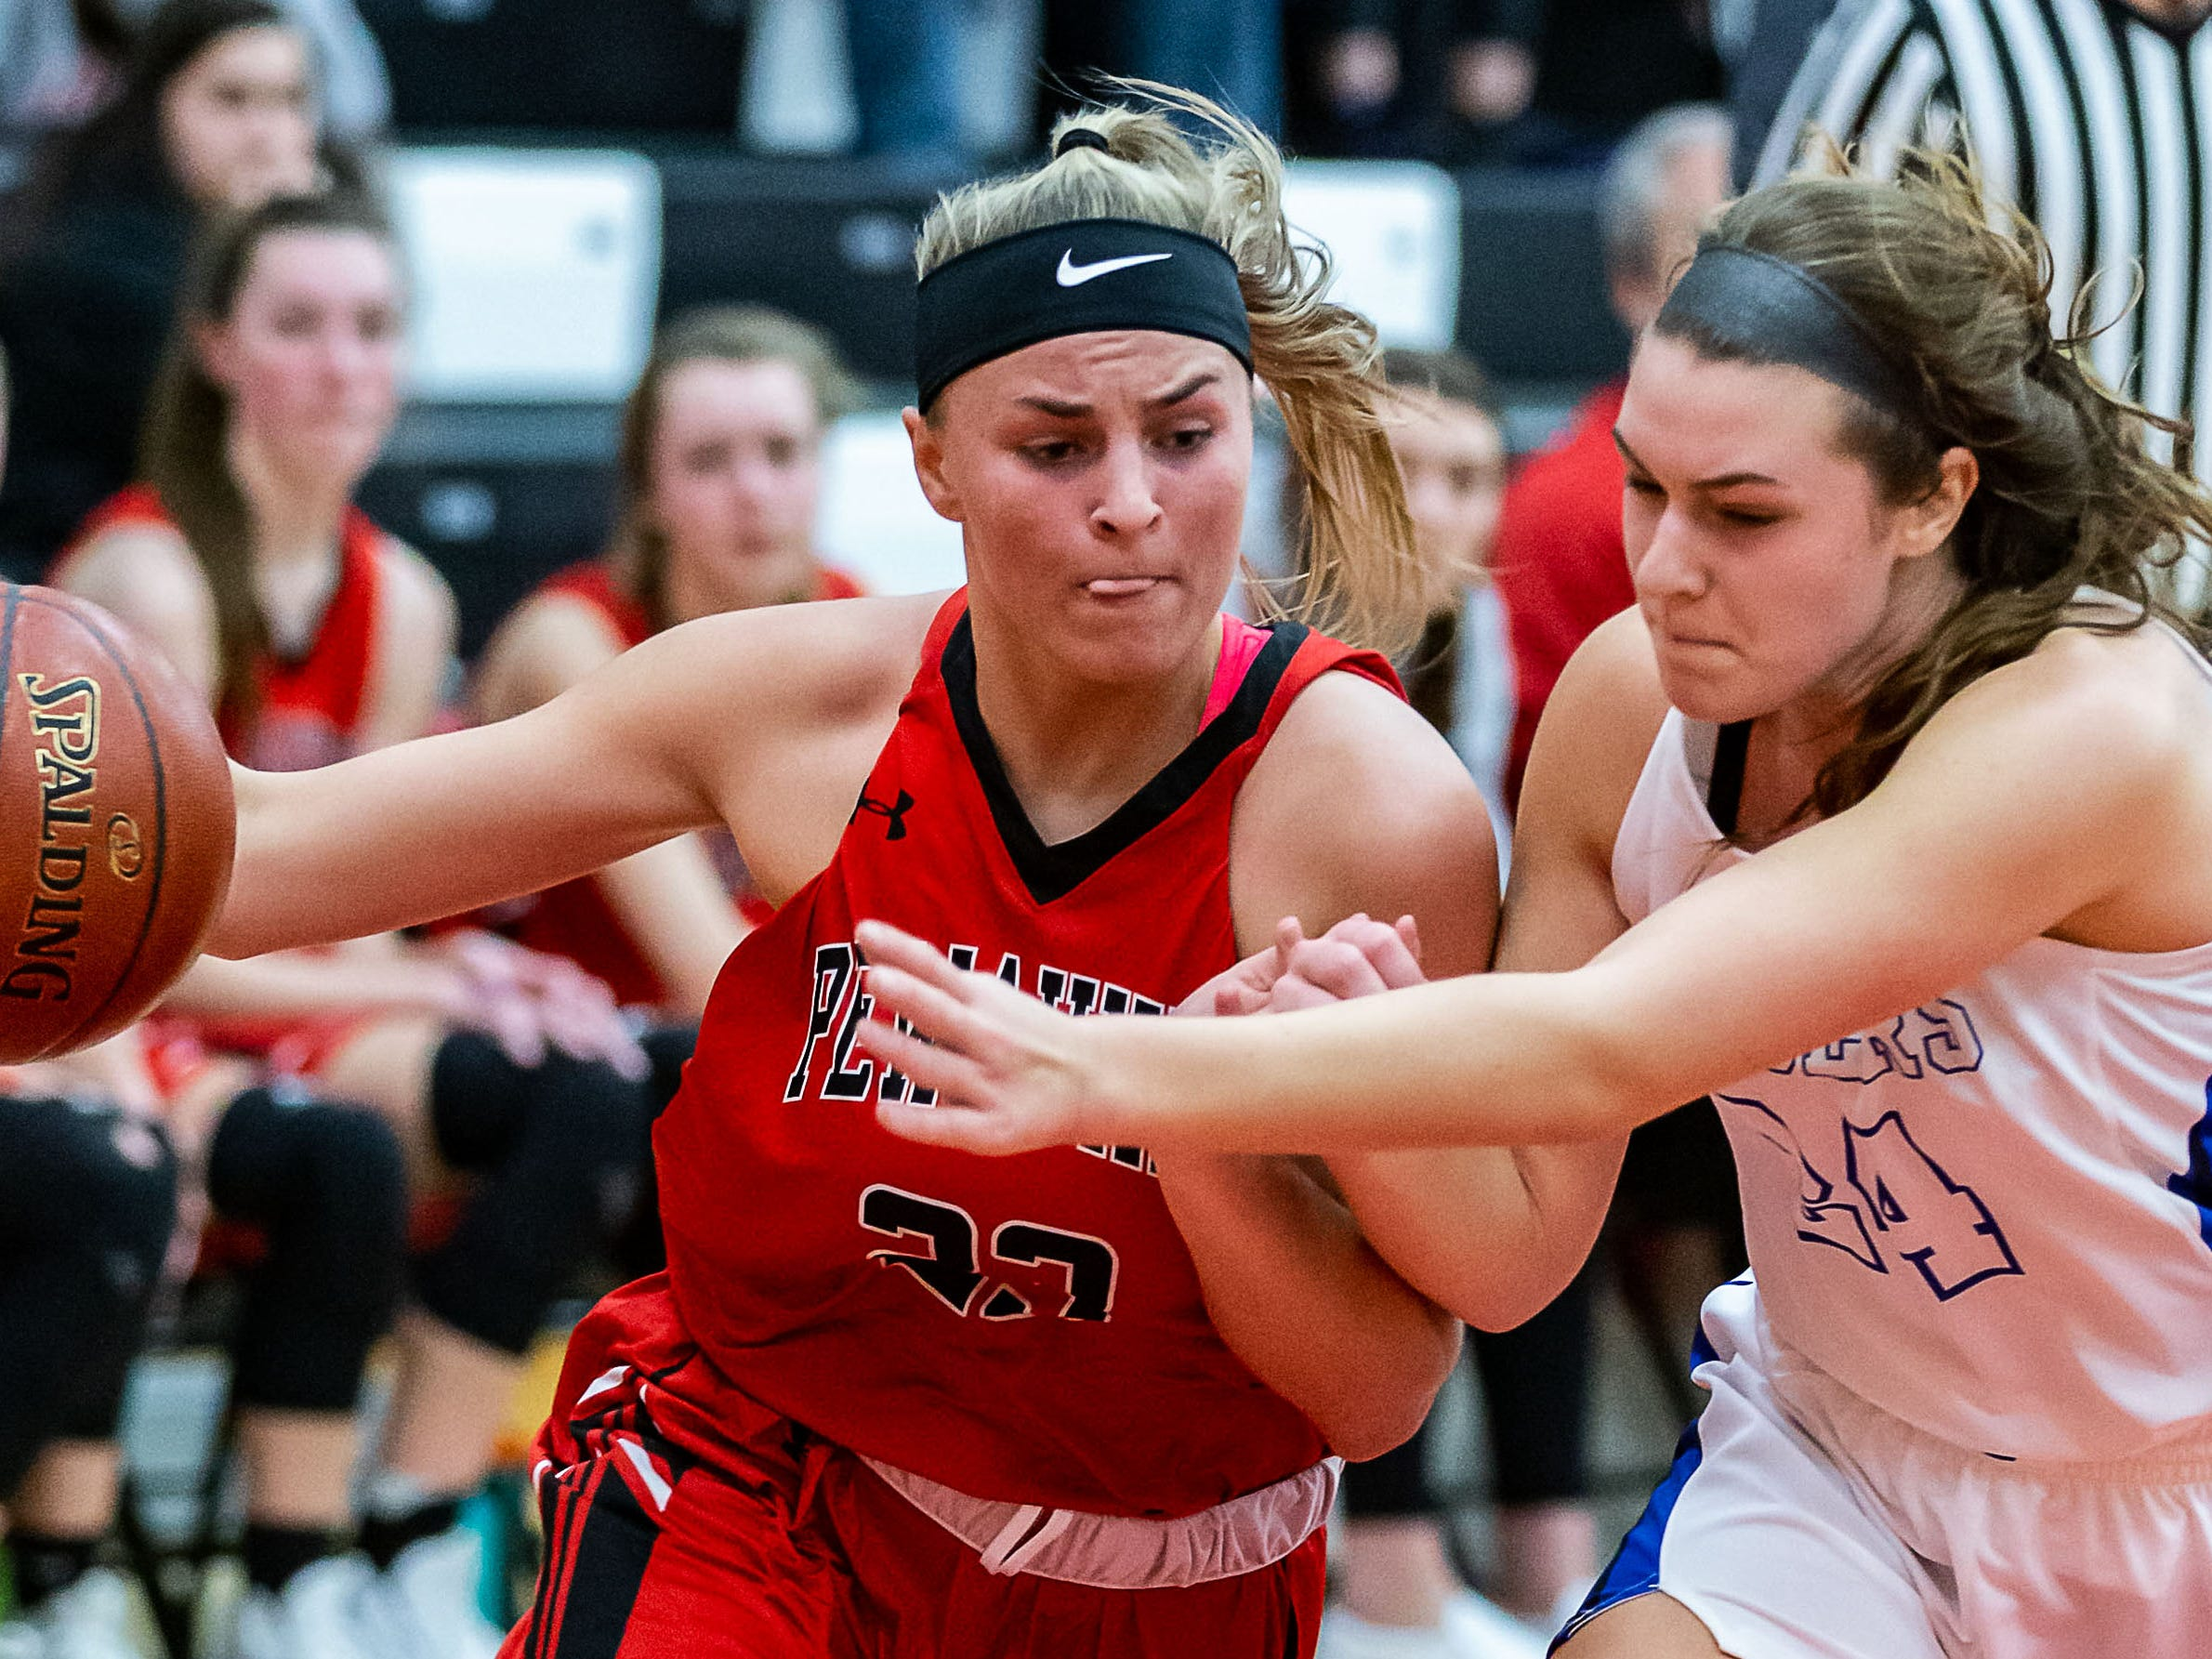 Pewaukee's Lauren Schill (left) battles to get past Brookfield Central's Grace Rudek (24) during the game at Pewaukee on Friday, Dec. 28, 2018.